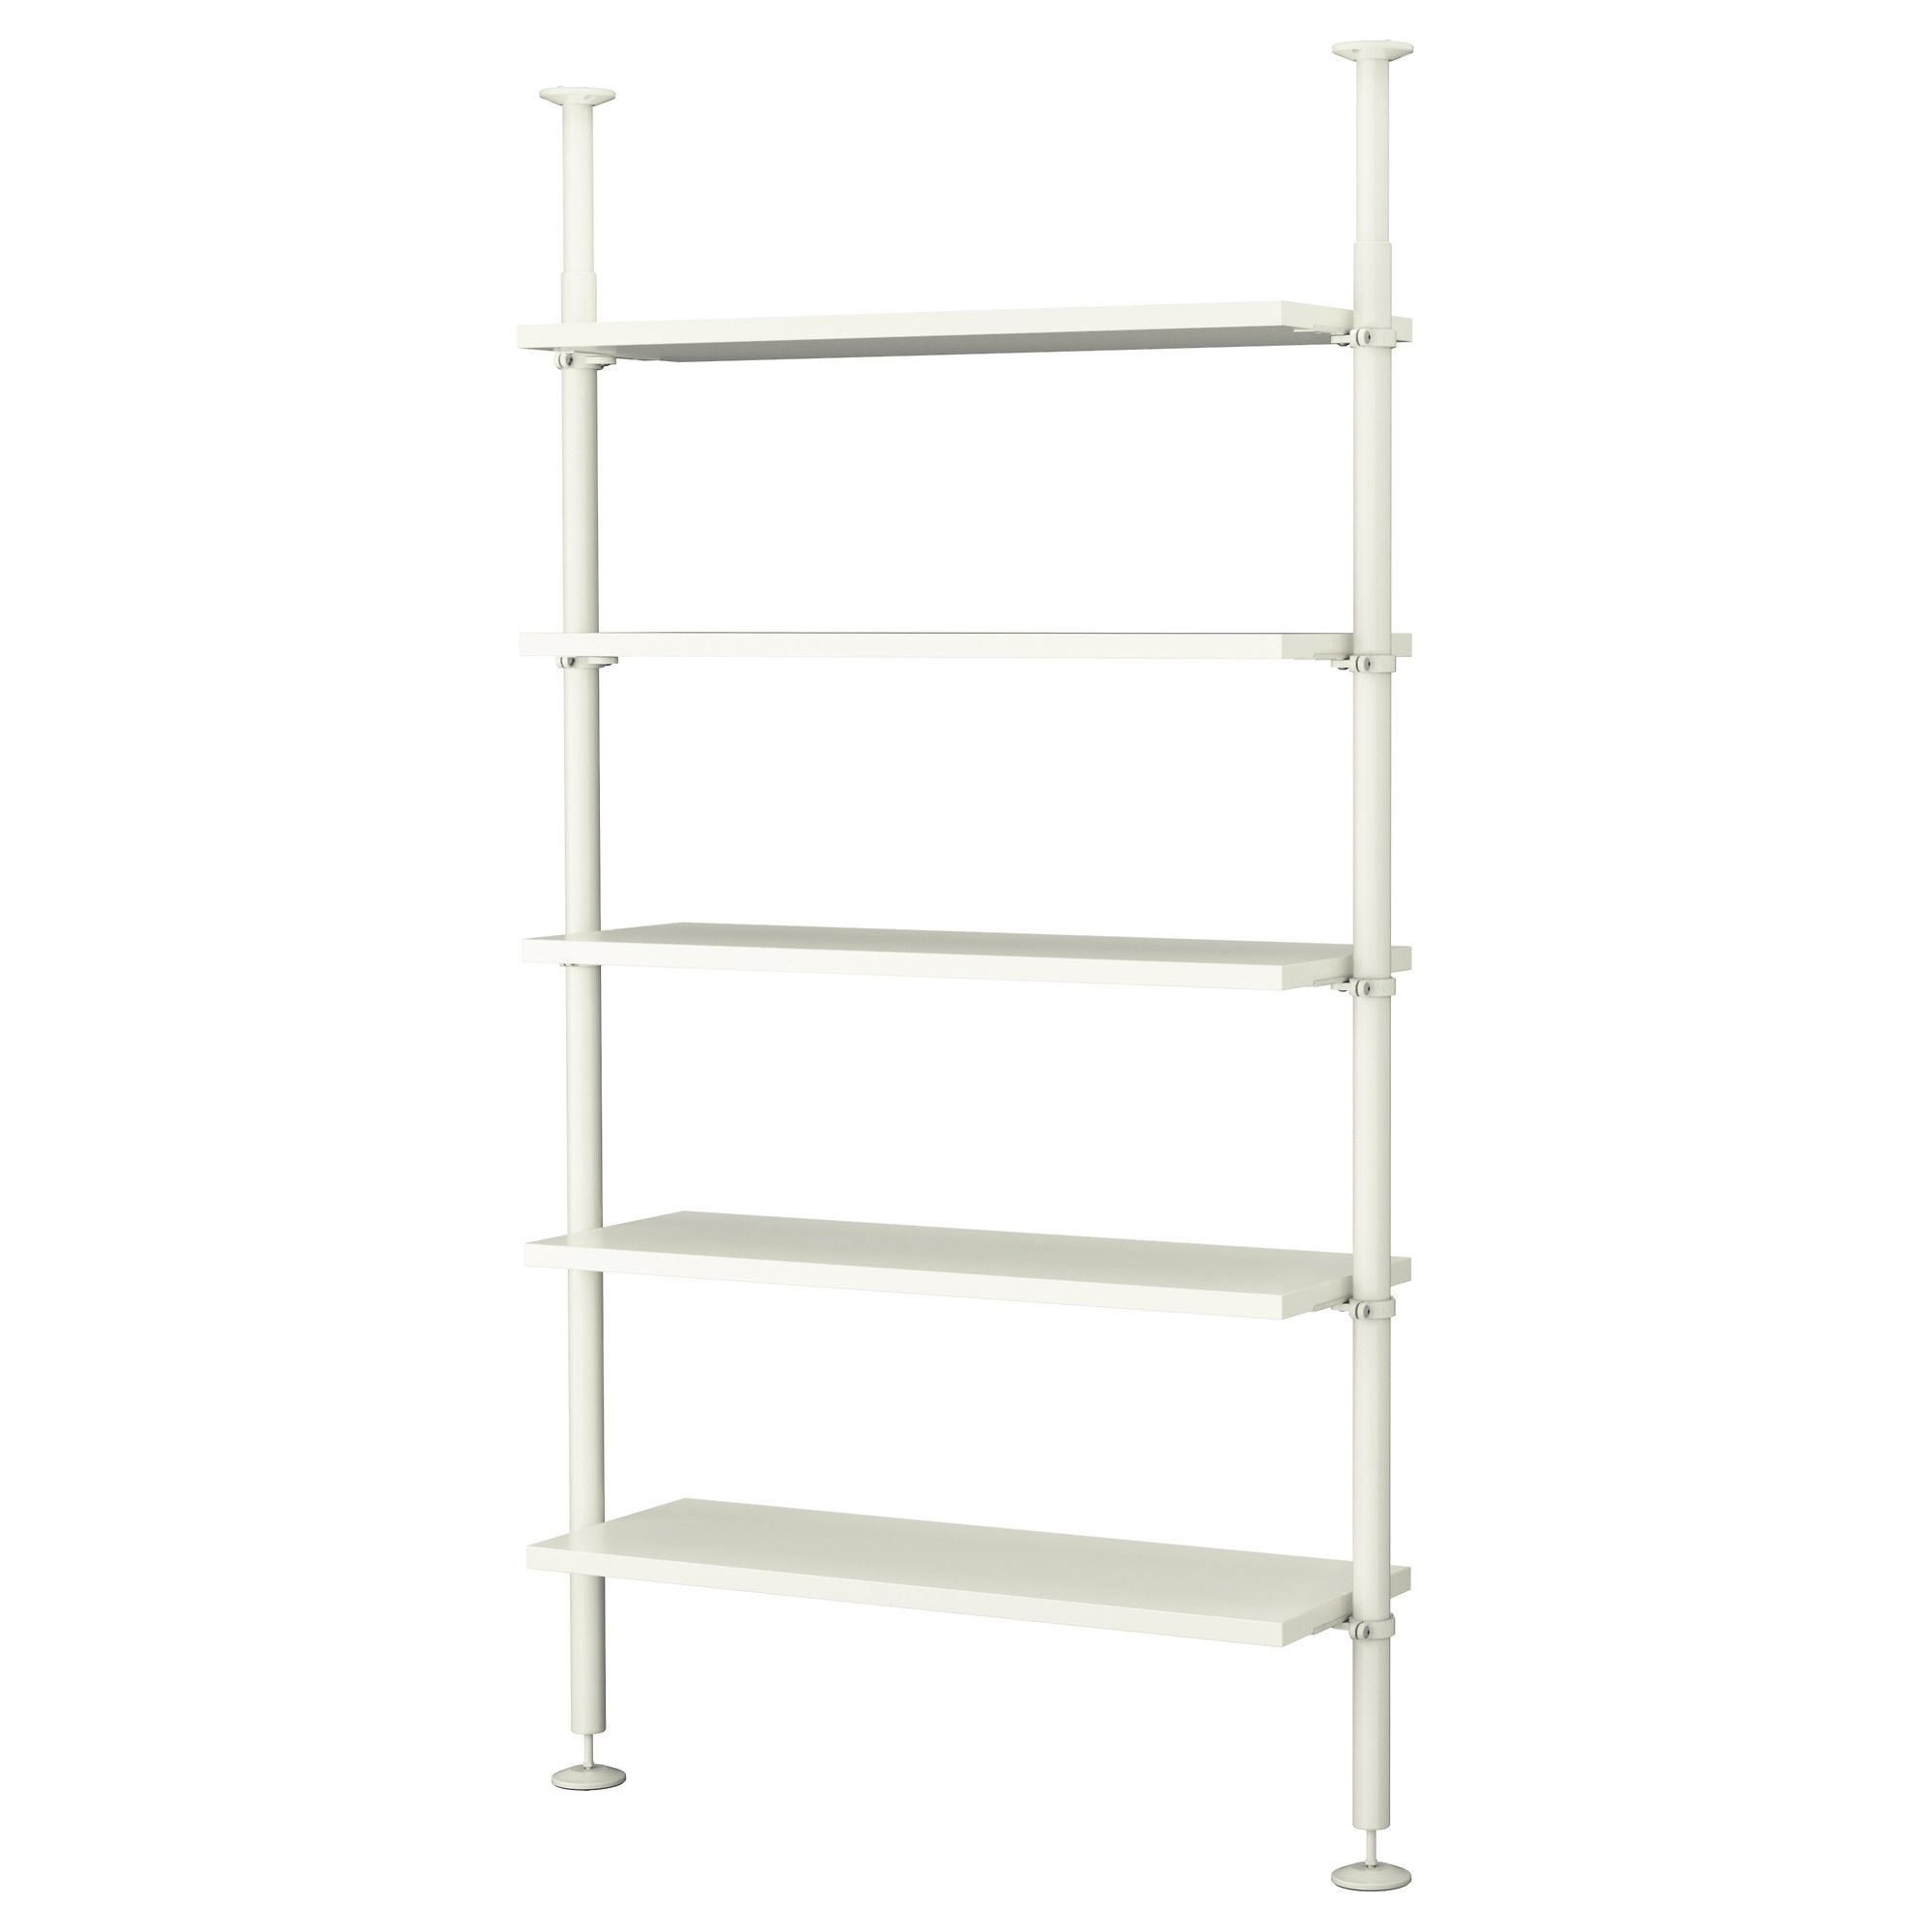 Dressing Ikea Stolmen Gallery Of Ikea Stolmen Shelf Unit Height Adjustable From